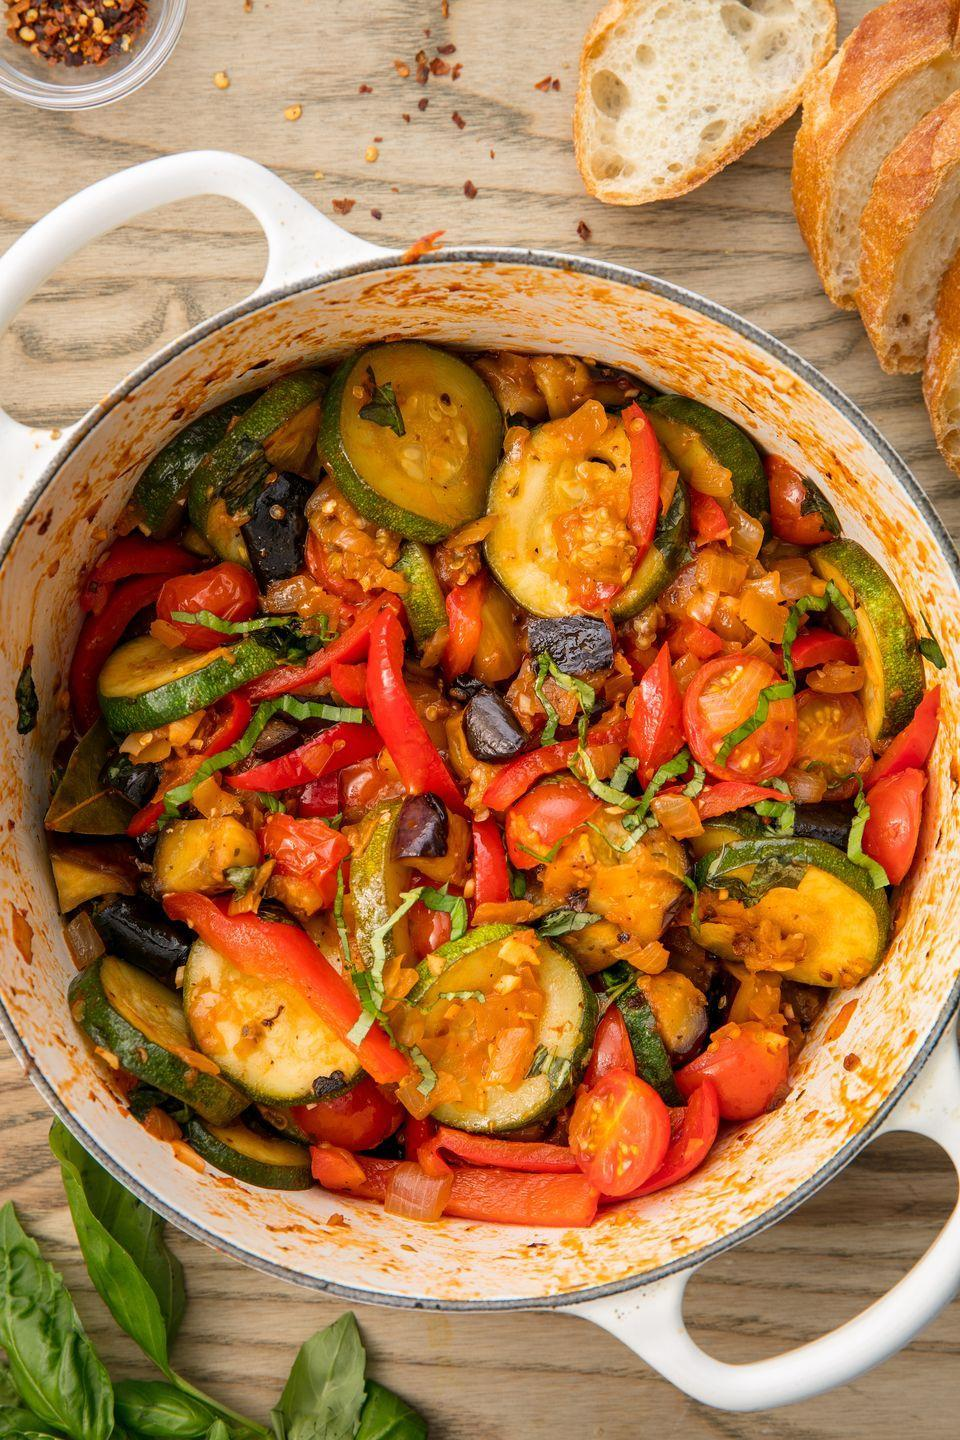 "<p>Ratatouille is a classic for a reaosn.</p><p>Get the recipe from <a href=""https://www.delish.com/cooking/recipe-ideas/recipes/a54463/easy-traditional-ratatouille-recipe/"" rel=""nofollow noopener"" target=""_blank"" data-ylk=""slk:Delish."" class=""link rapid-noclick-resp"">Delish. </a></p>"